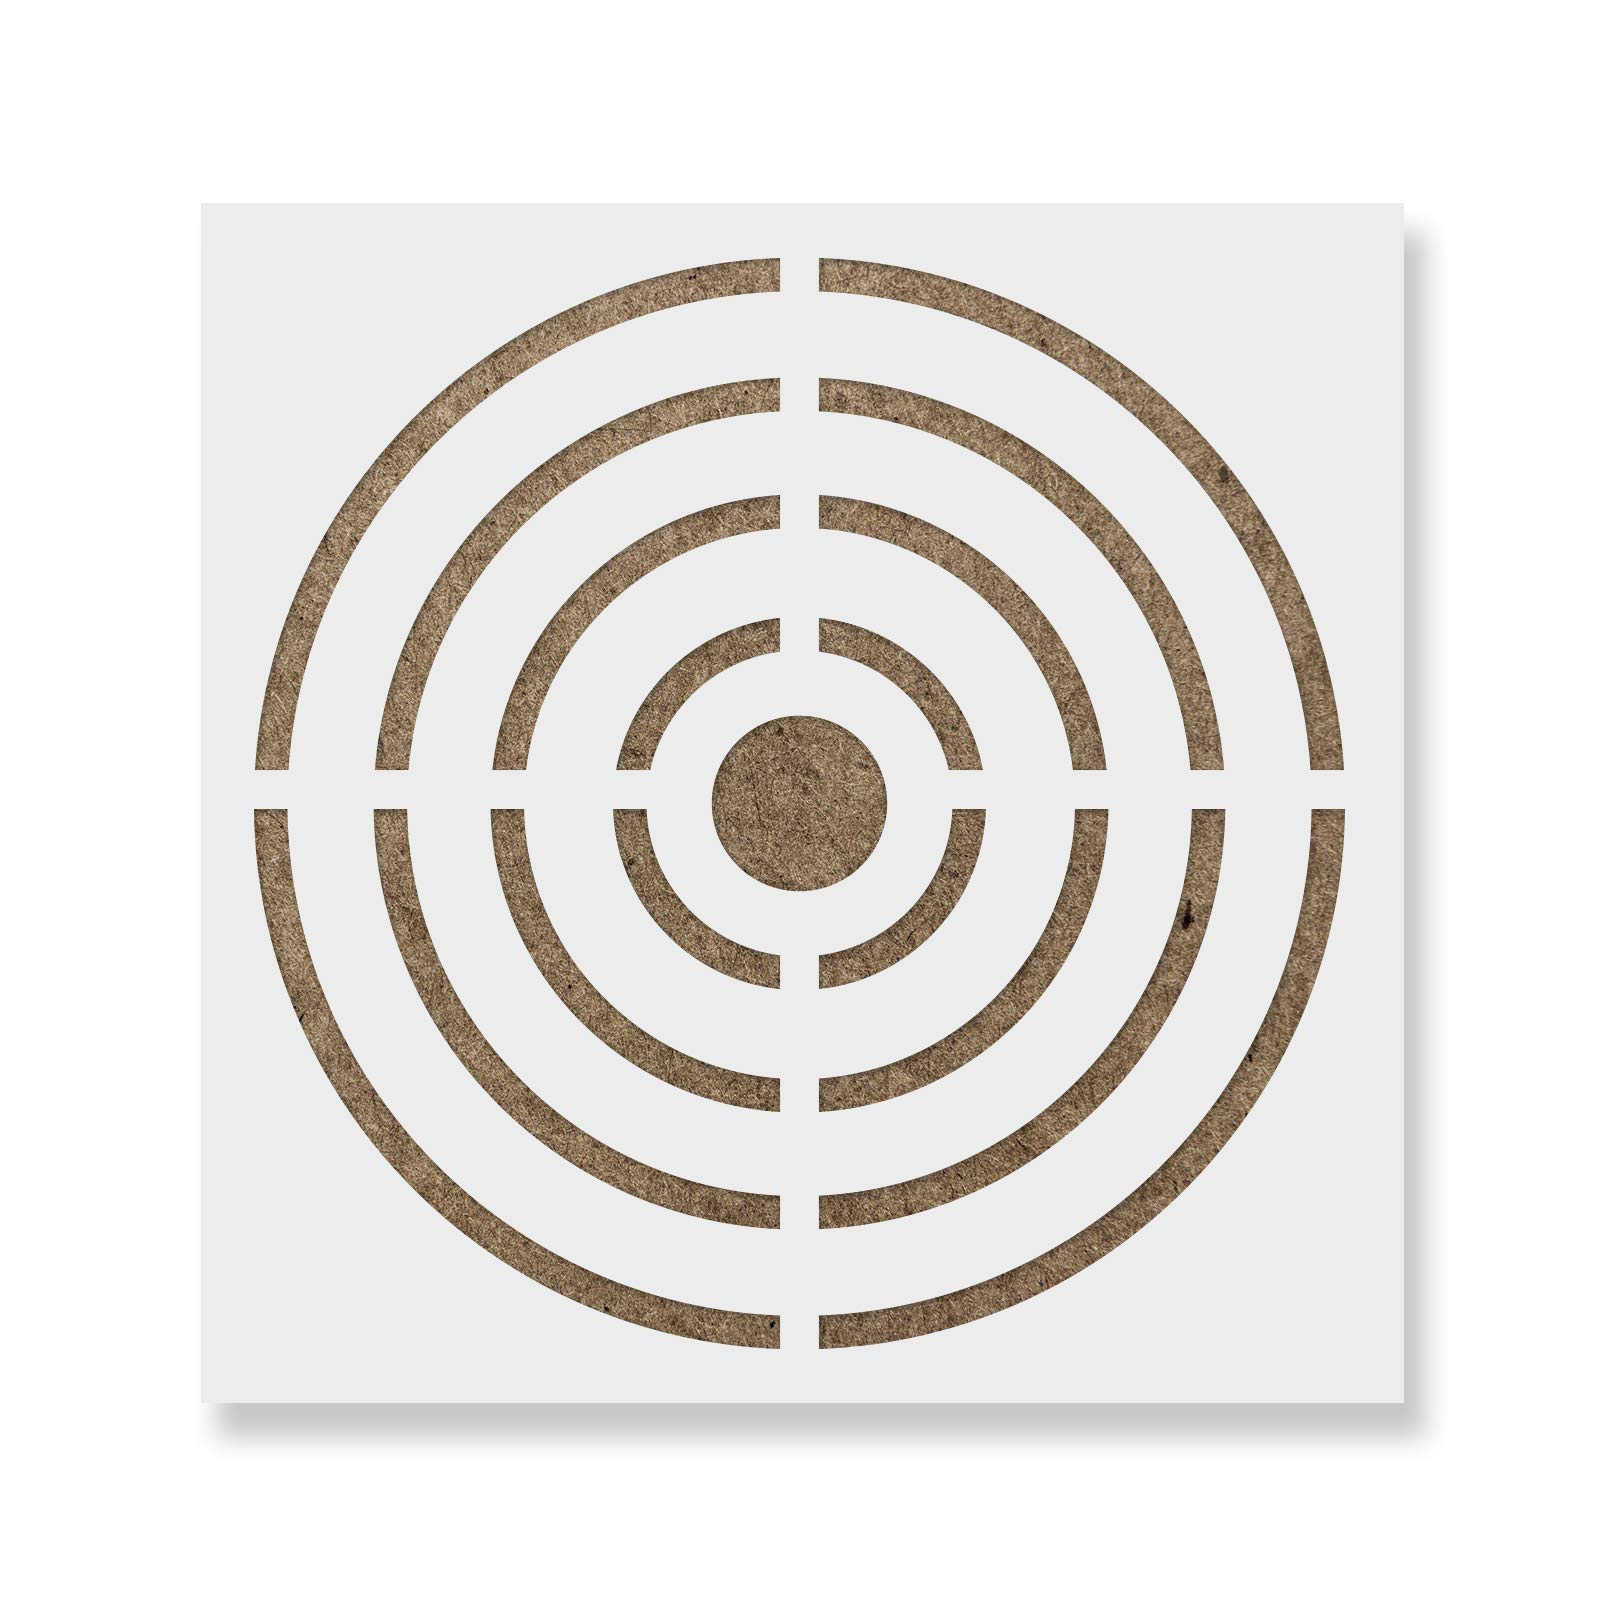 Bullseye Target Stencil Template - Reusable Wall Stencil with Multiple Sizes Available